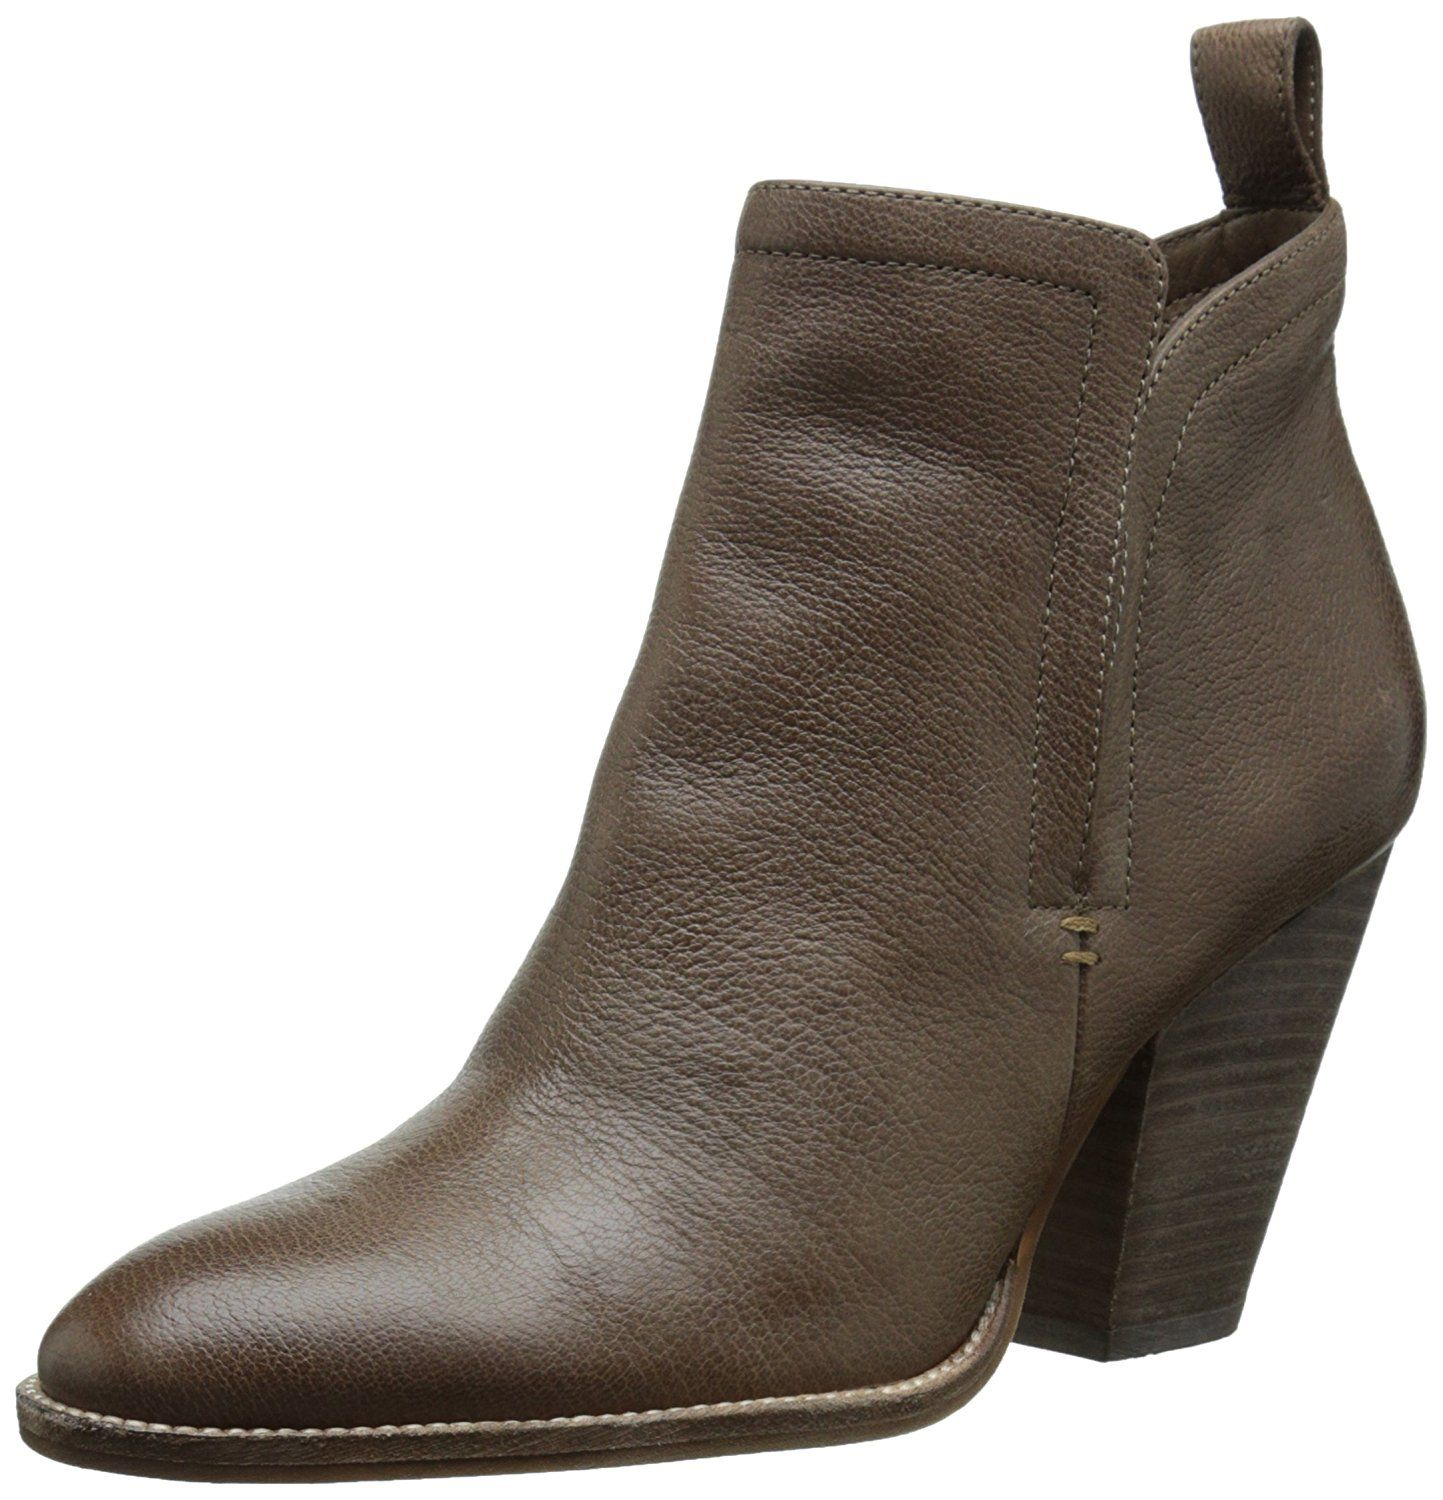 Dolce Vita Women s Hastings Bootie    This is an Amazon Affiliate link.  Check out. Botas De MujeresBotas De TacónBotines De ... 447d483b2cbad